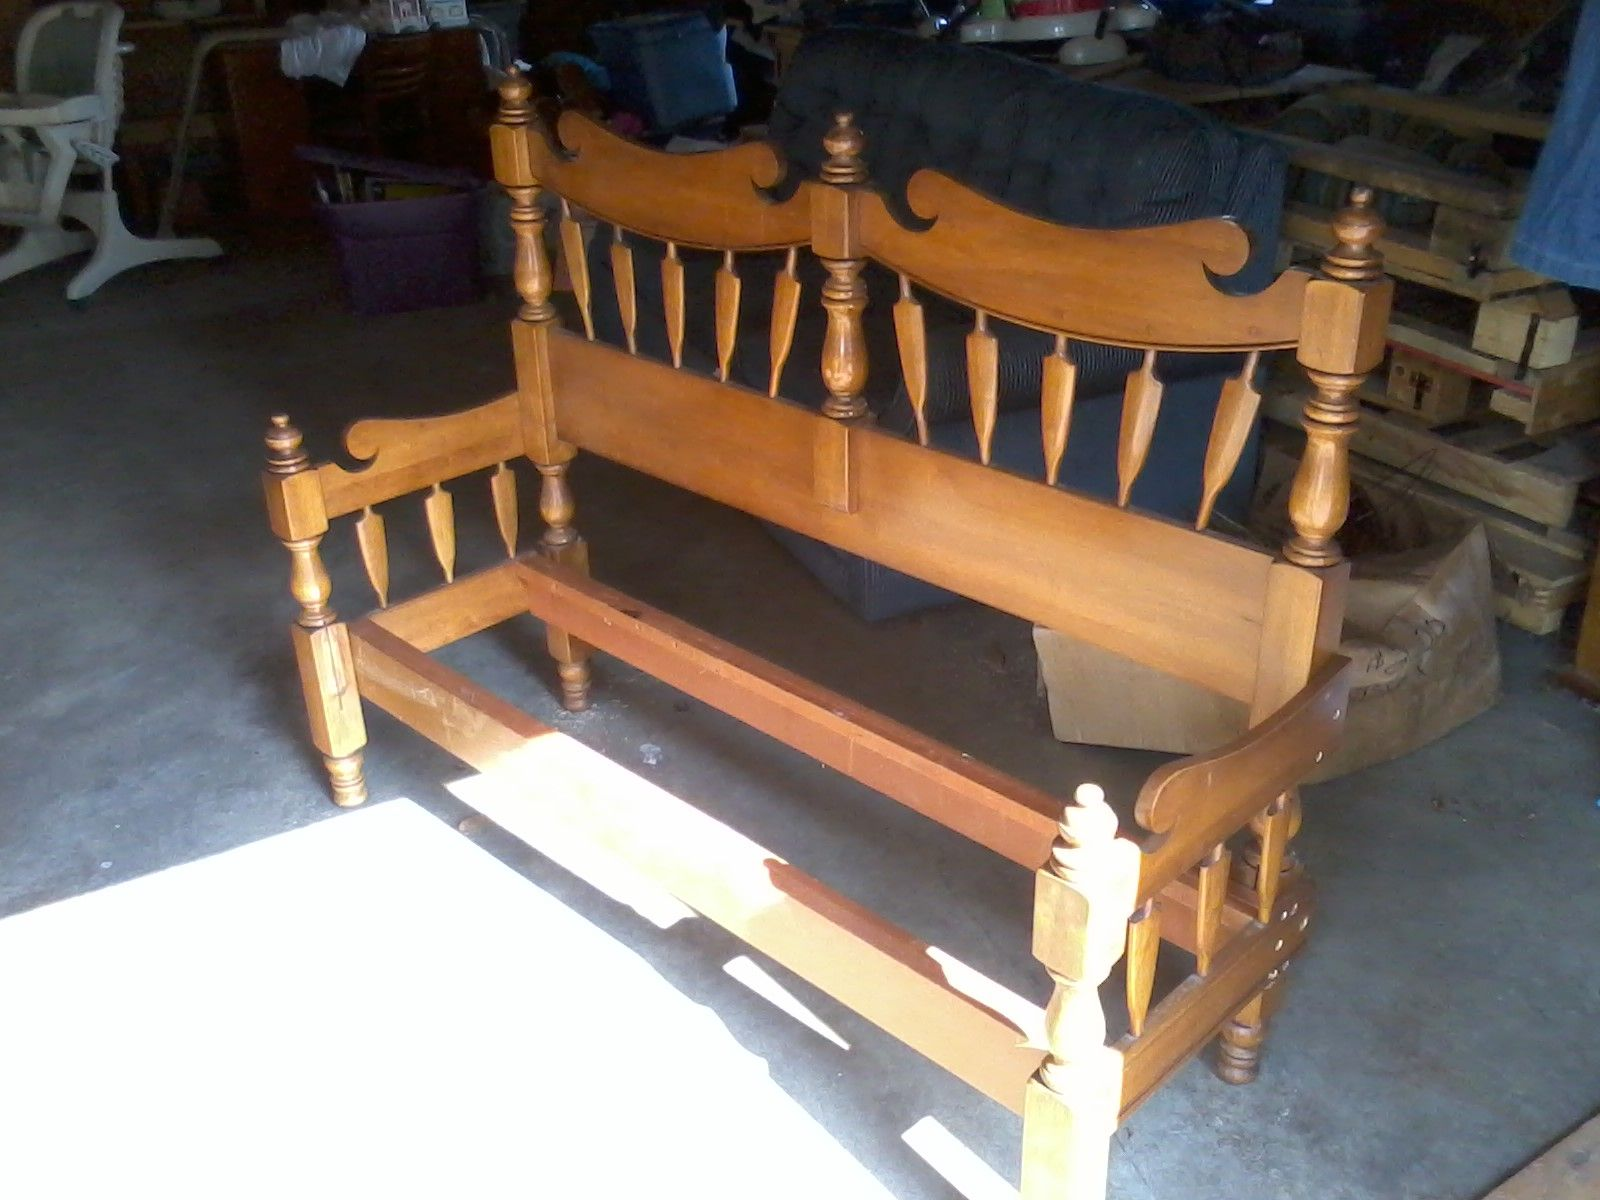 Bench I Made From A Fullsize Bed Frame Going To Paint It